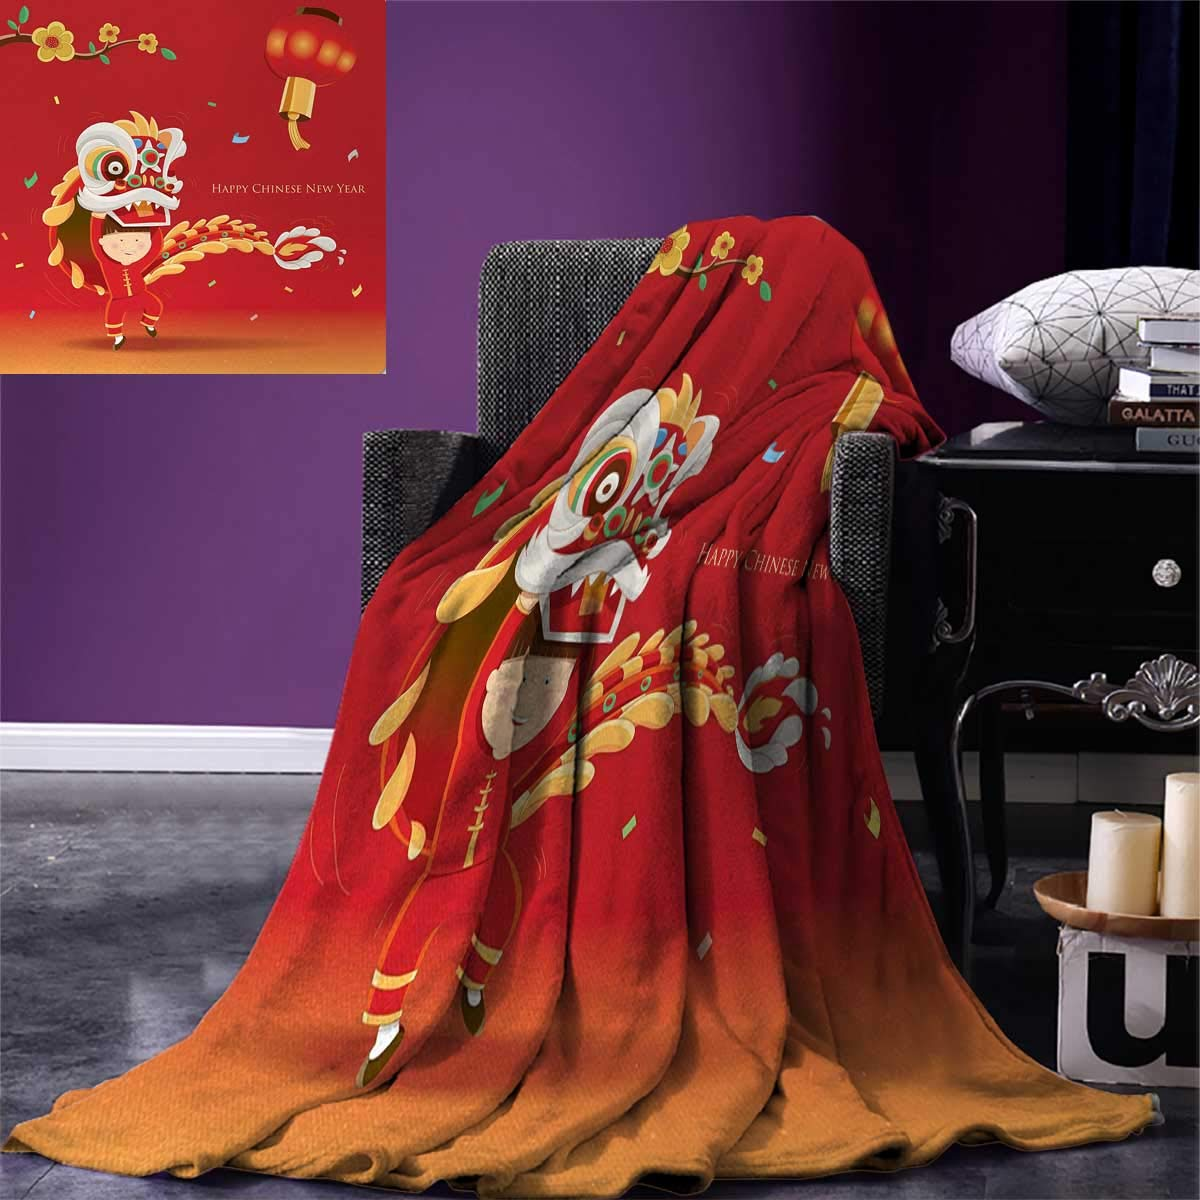 Chinese New Year Throw Blanket Little Boy Performing Lion Dance with The Costume Flowering Branch Lantern Velvet Plush Throw Blanket 60''x50'' Multicolor